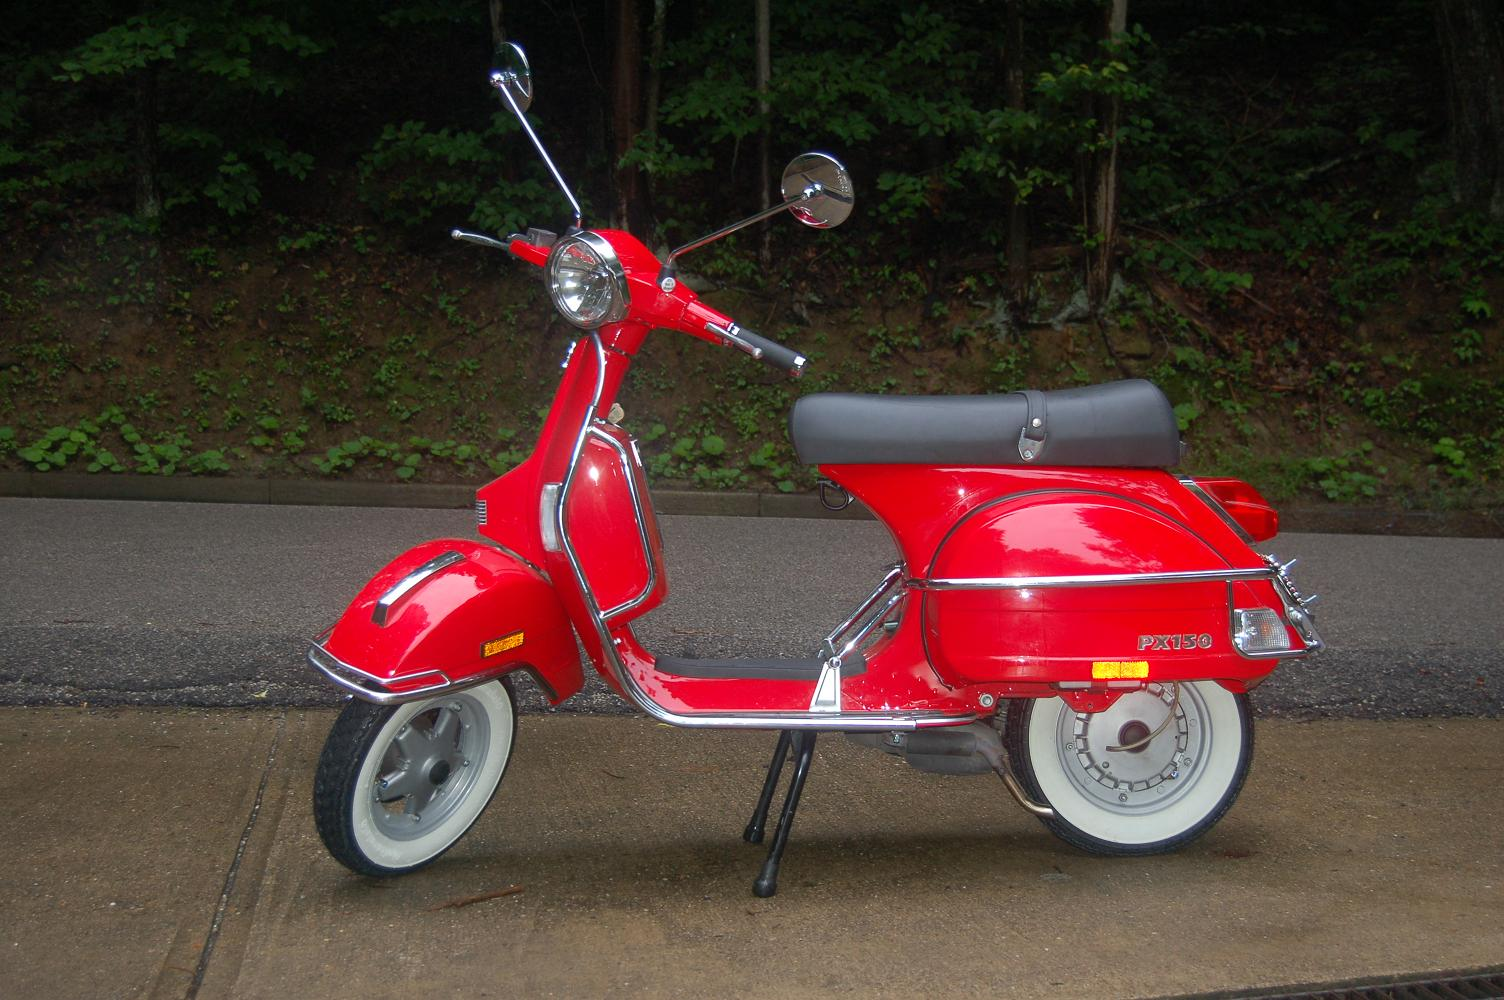 moped vespaclass=cosplayers